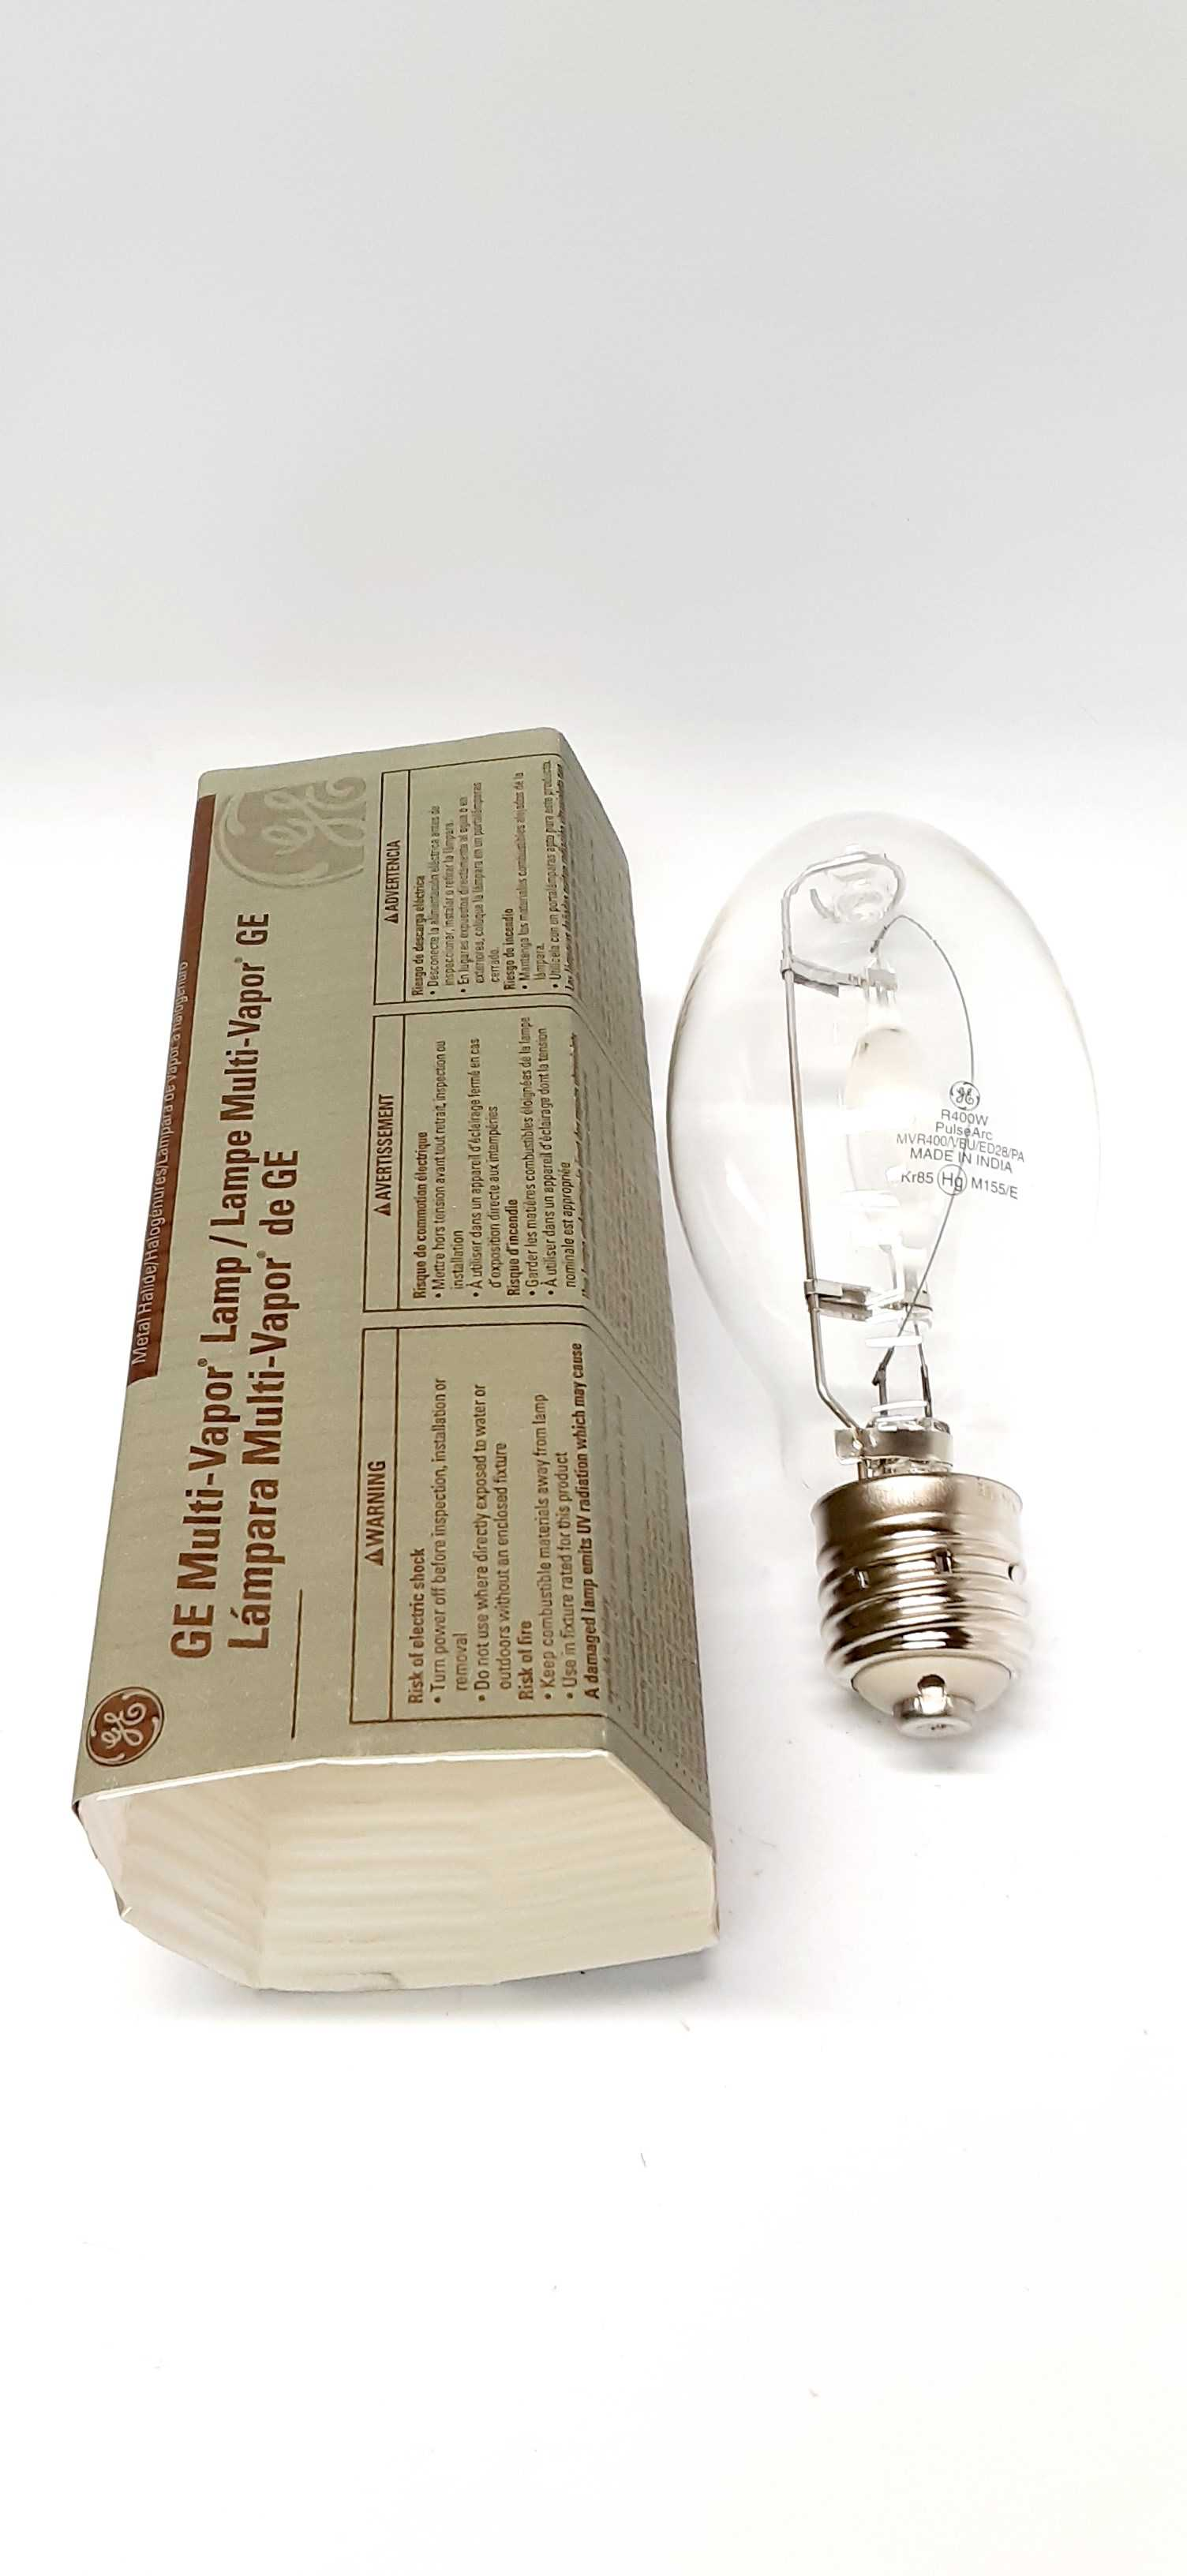 General Electric MVR400/VBU/ED28/PA Multi-Vapor Lamp Bulb 400W